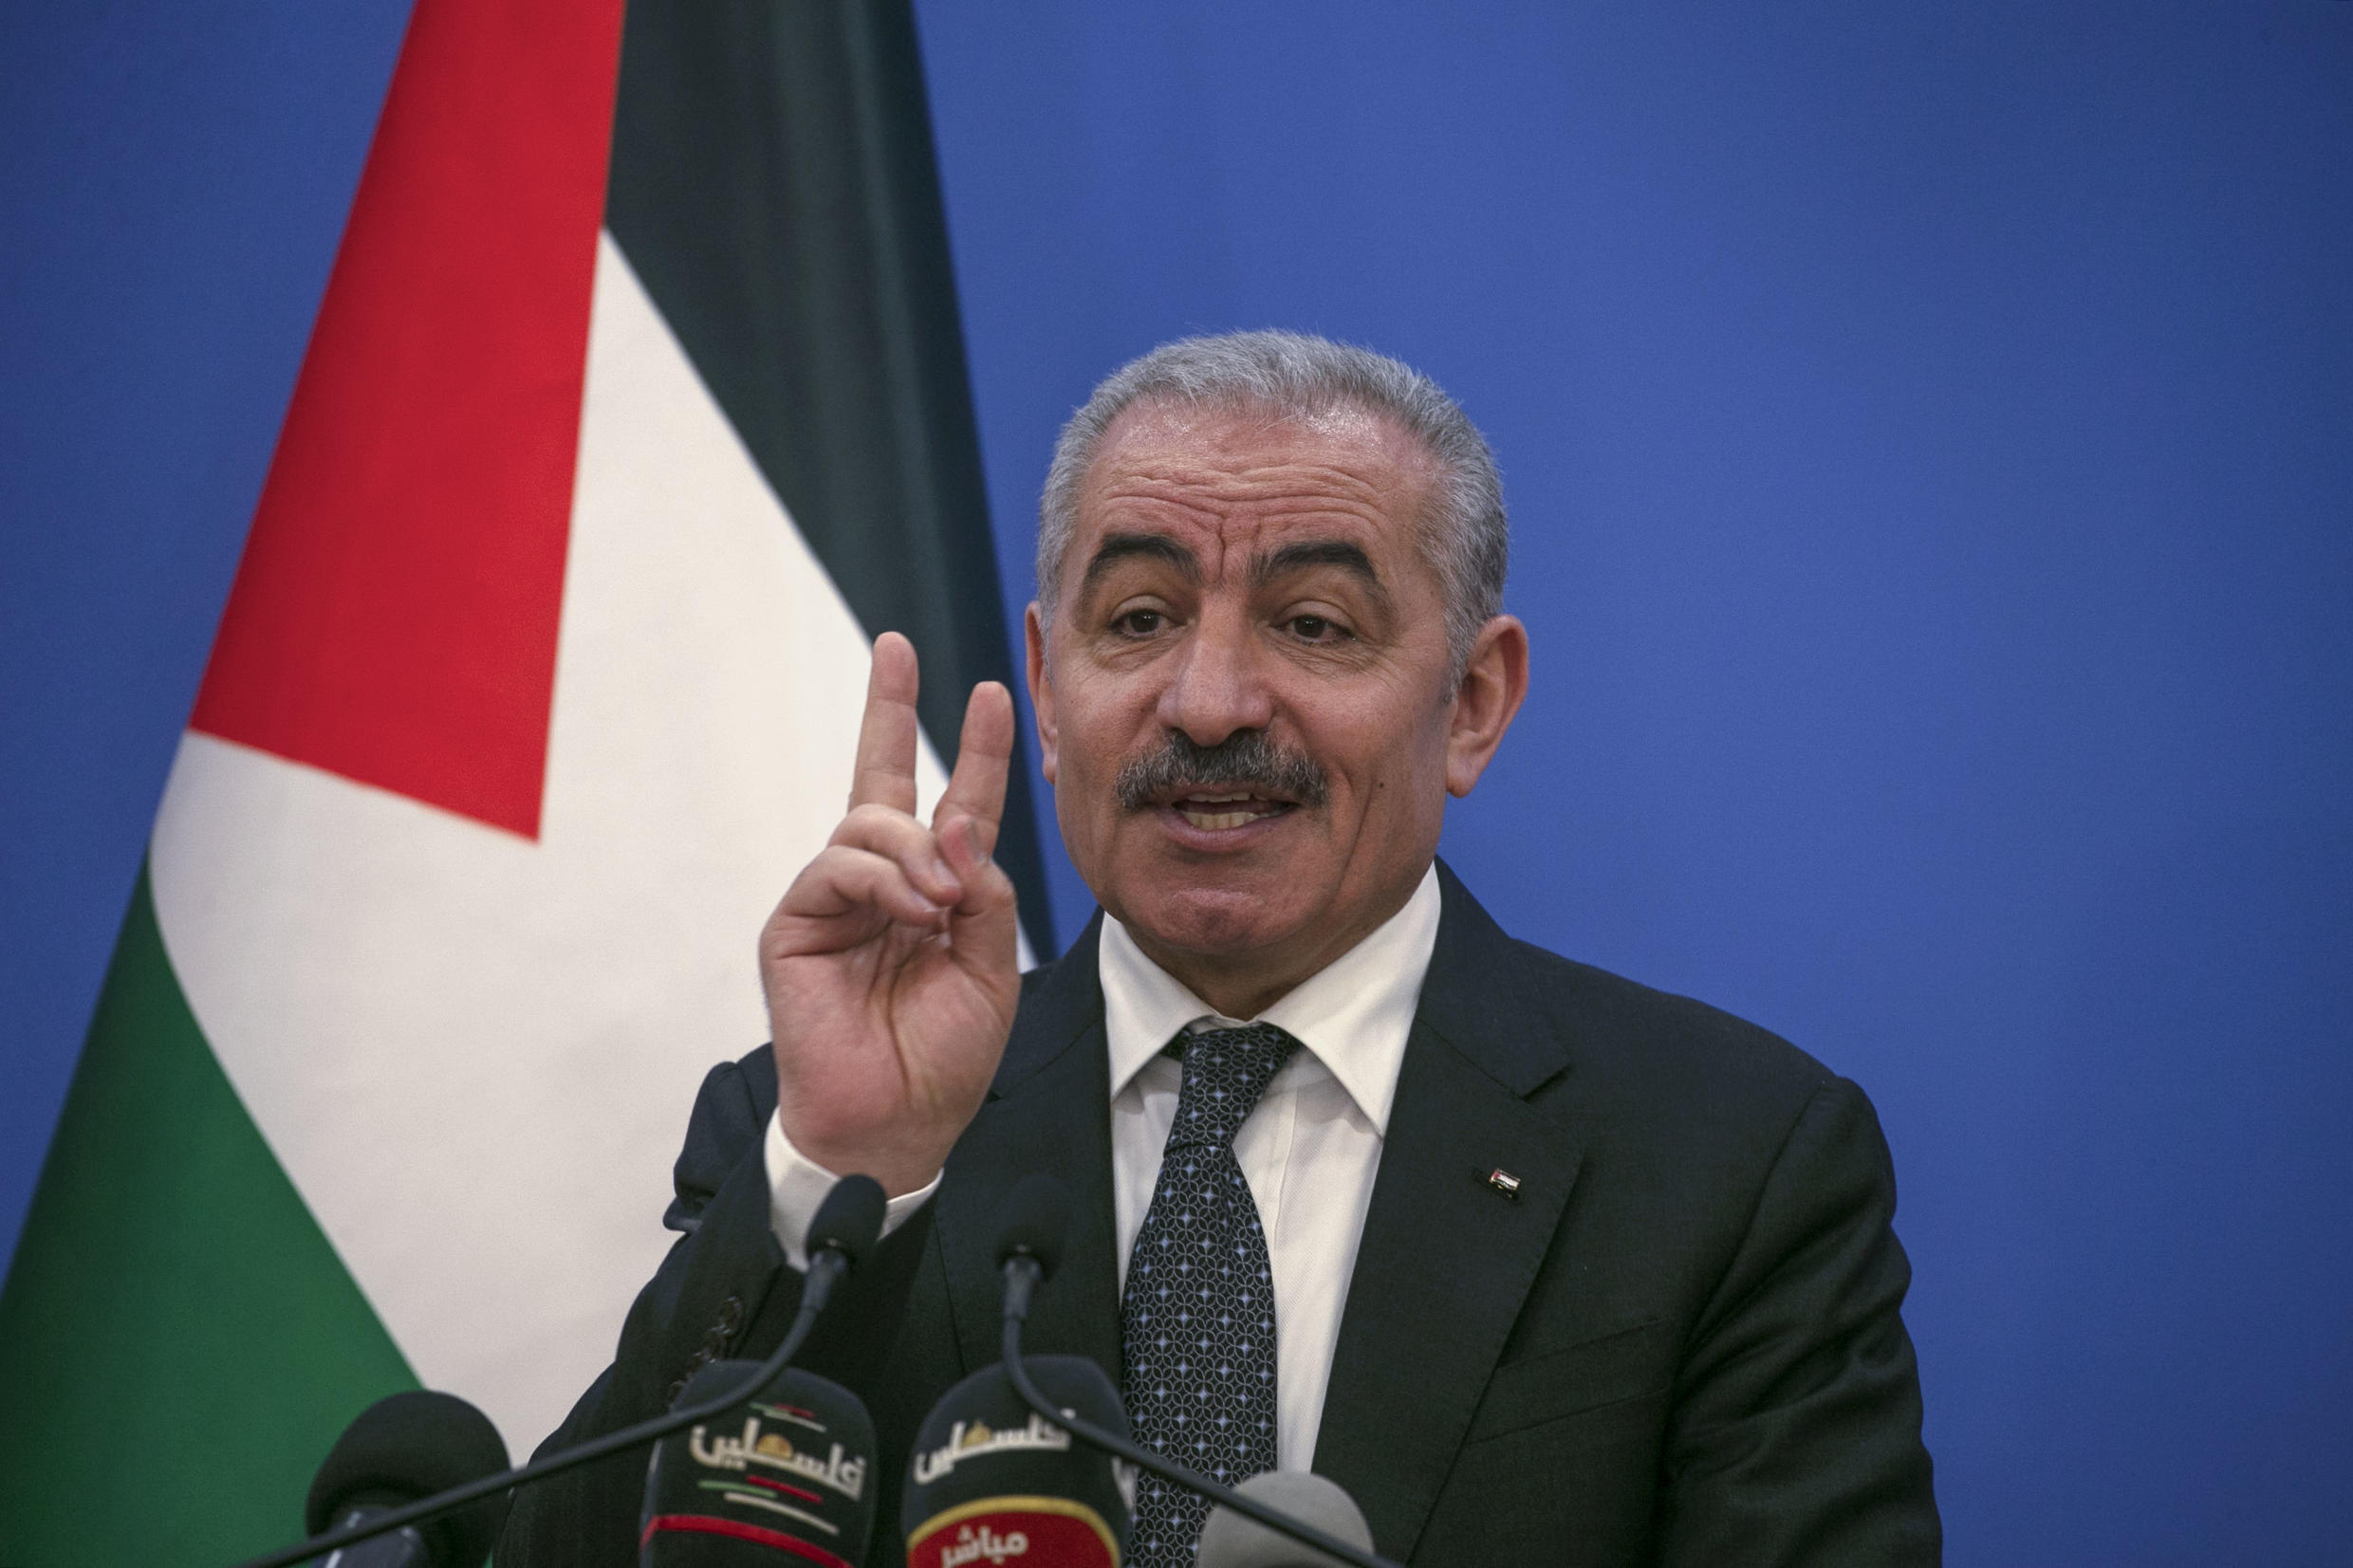 Palestinian Prime Minister Mohammad Shtayyeh gestures as he talks to reporters during a press conference in Ramallah on May 5, 2020.